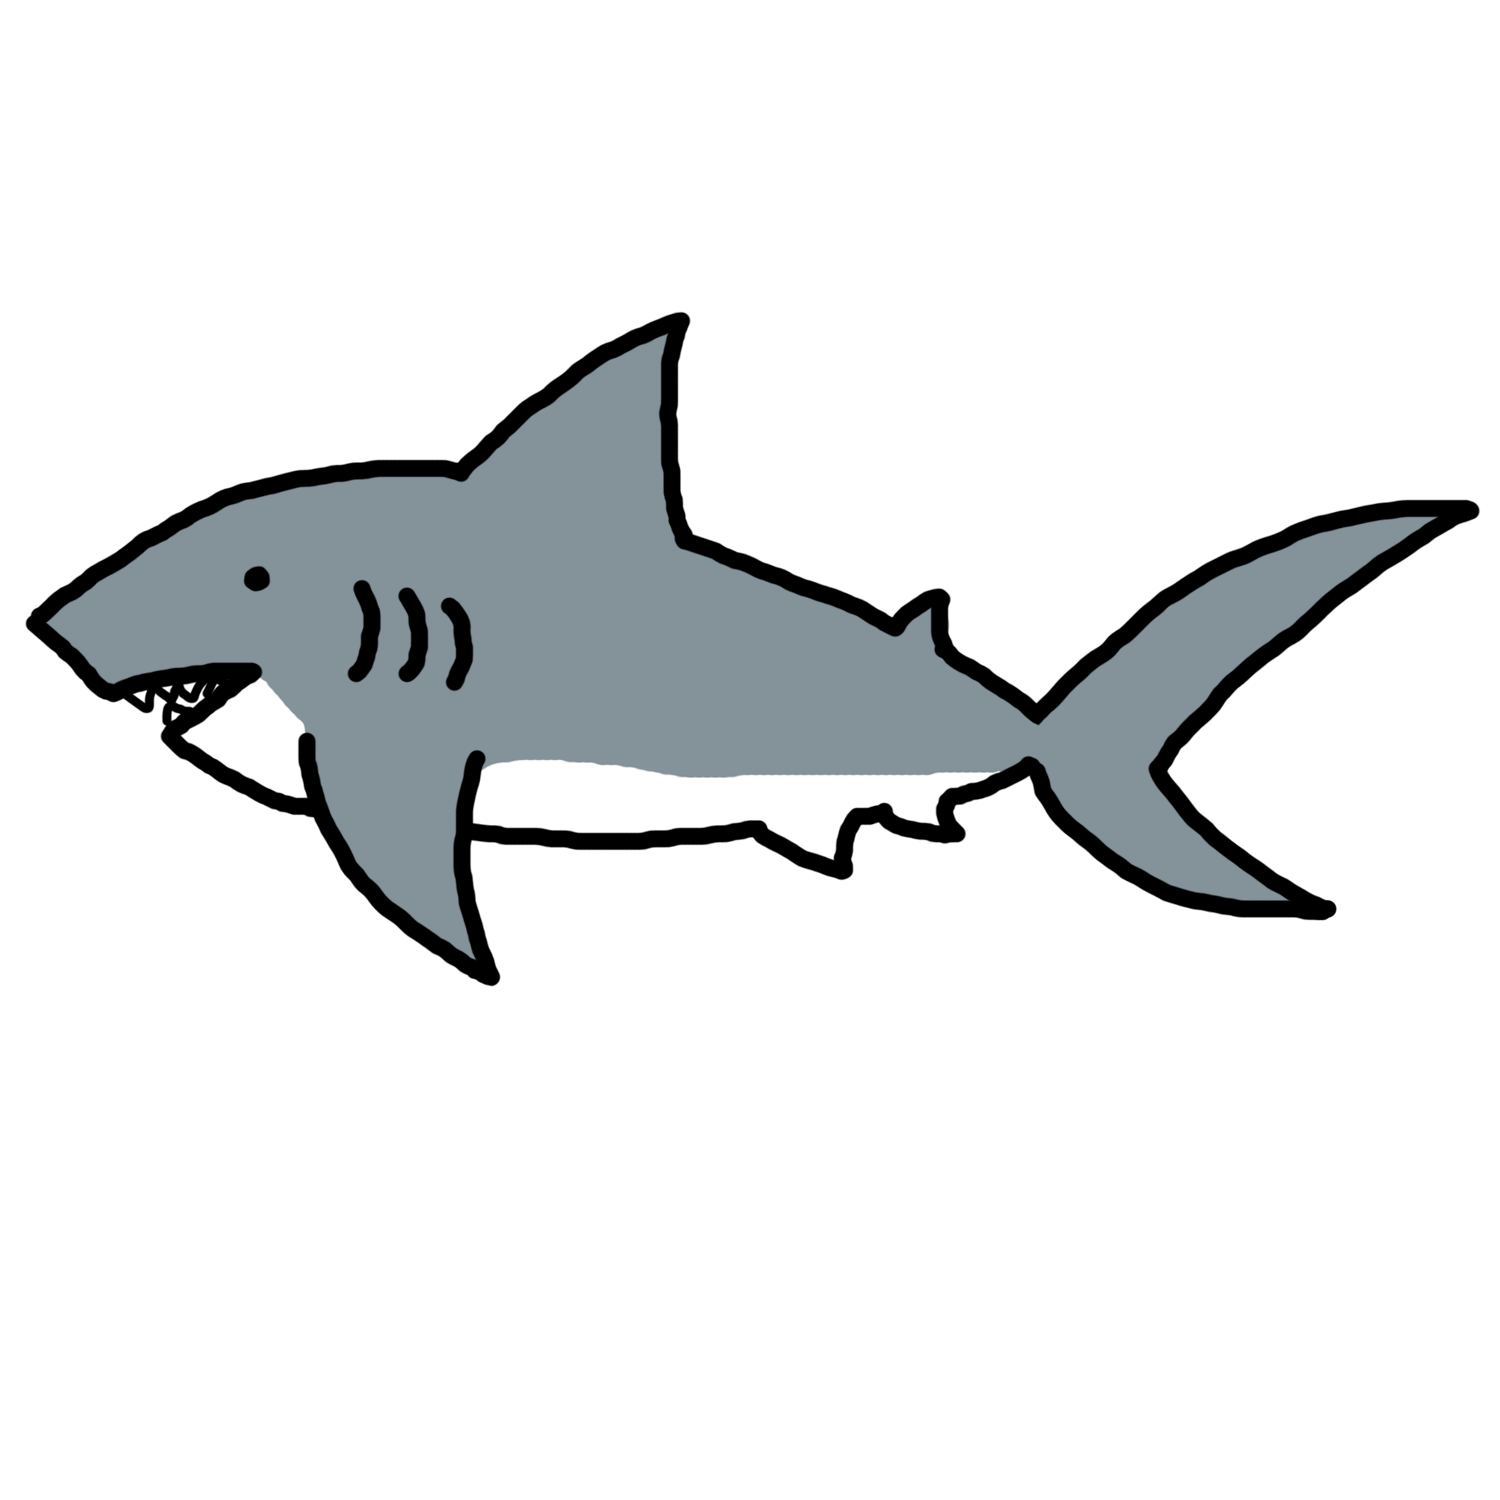 Sharkwhale clipart friendly shark #3